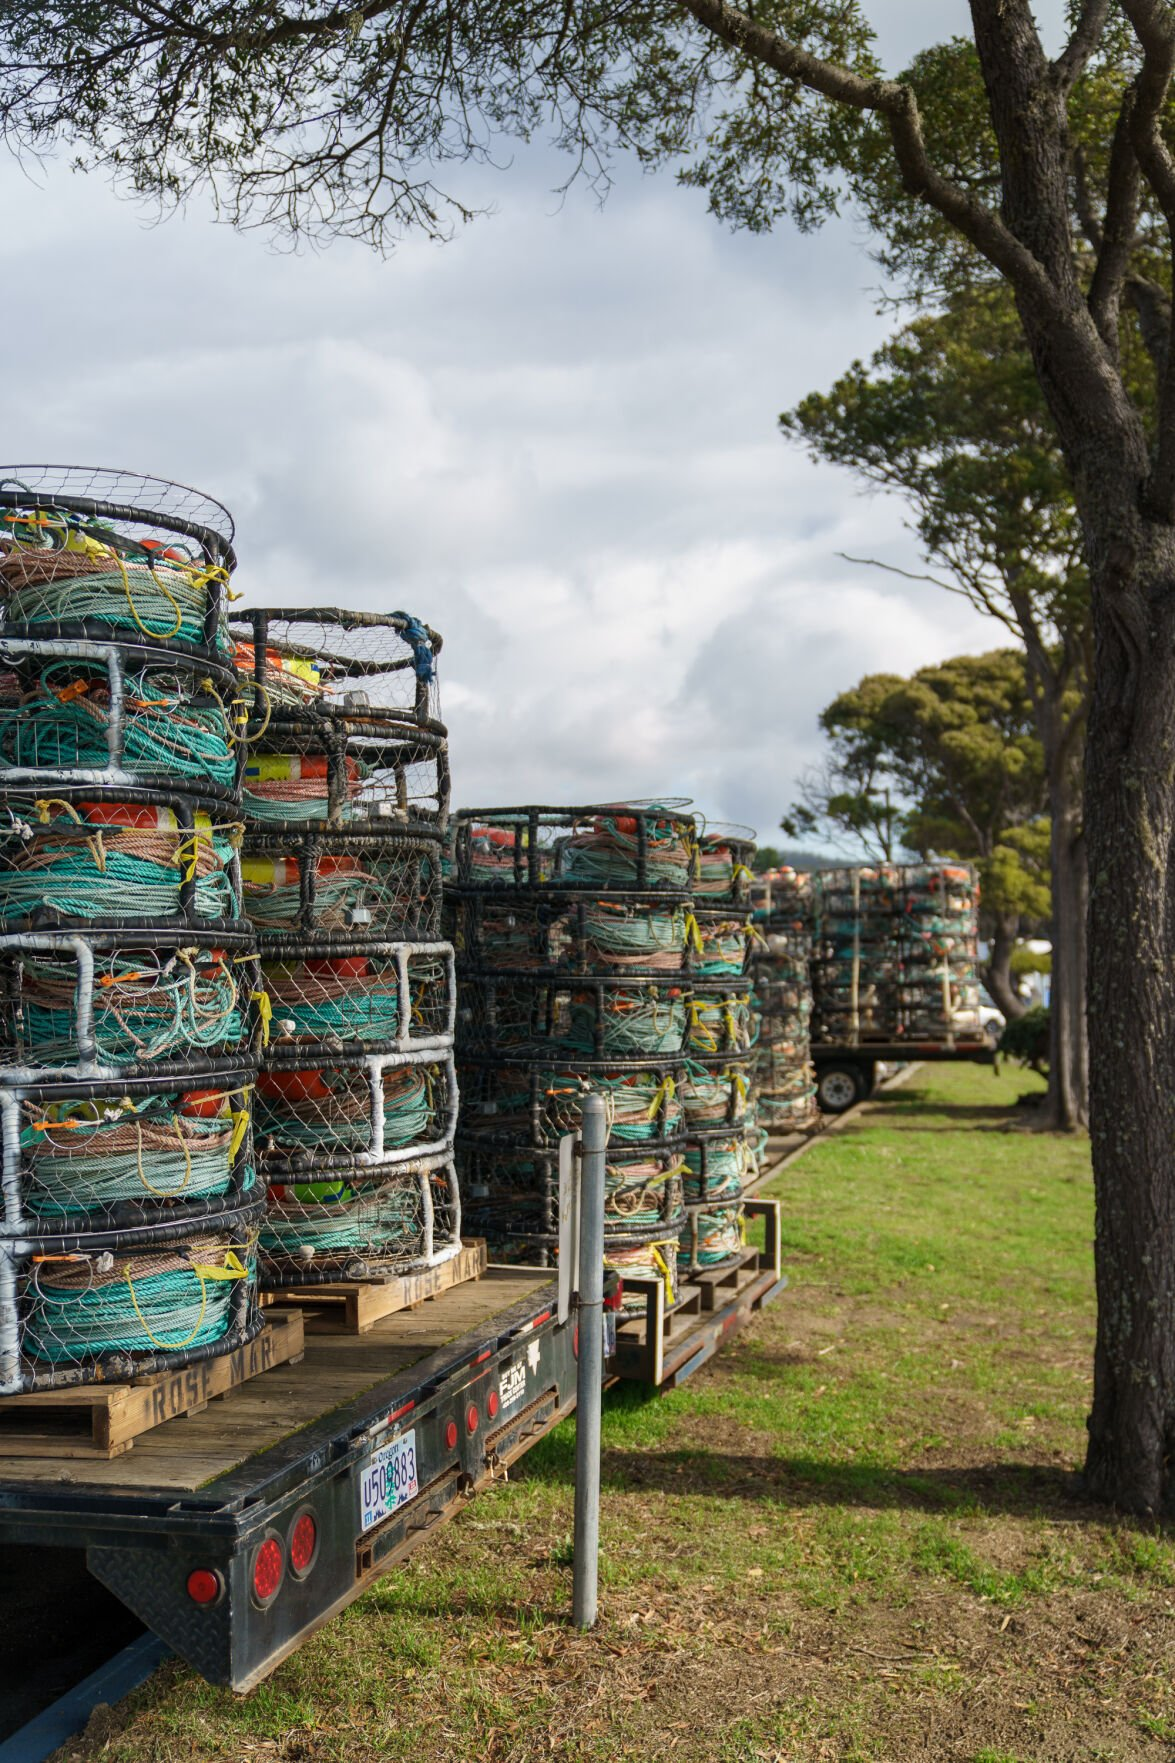 Crab Pots in parking lot